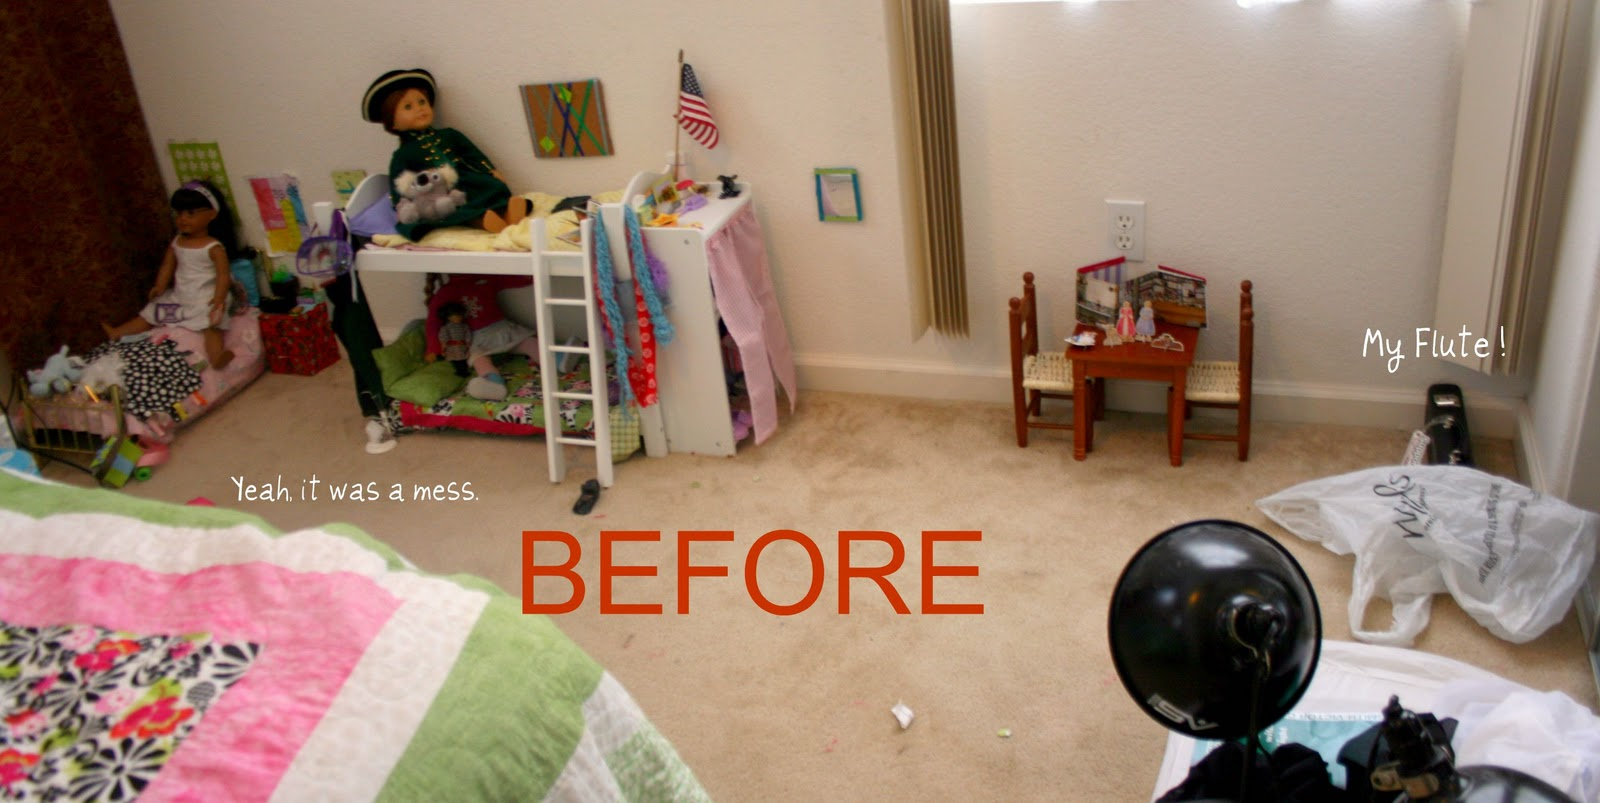 How to make a simple american girl doll bedroom bedroom review design - American girl bedroom ideas ...